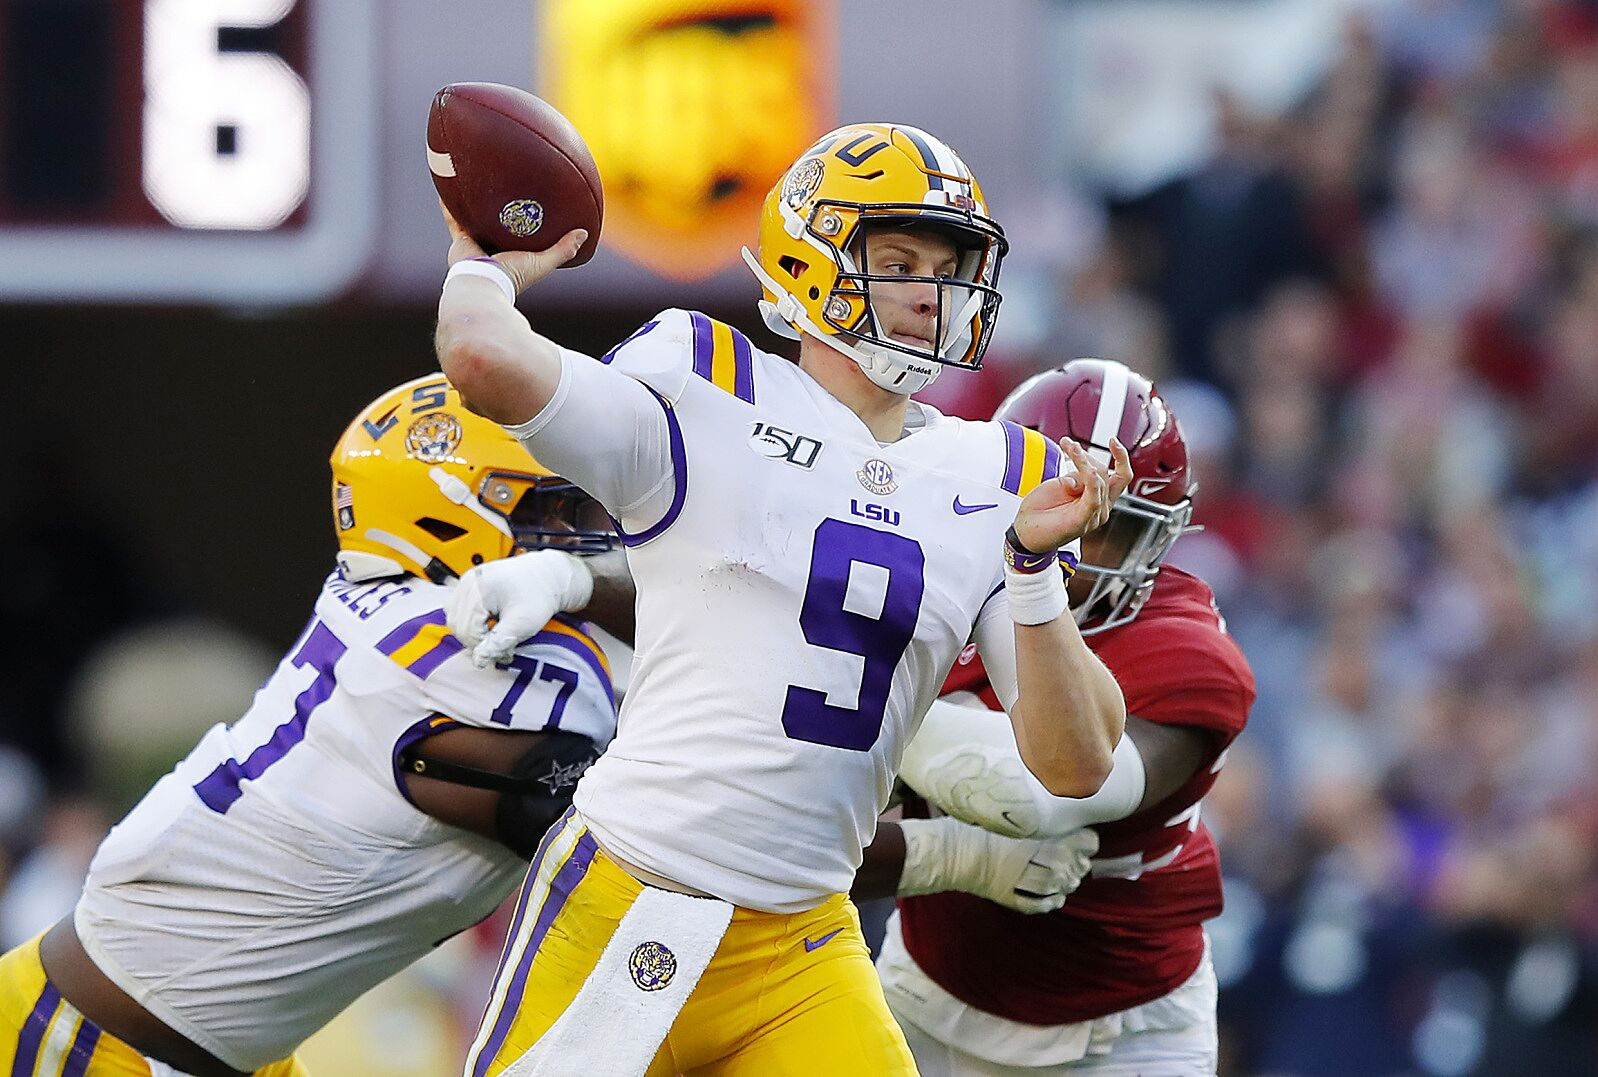 2020 NFL Draft Big Board: Top five players at every position